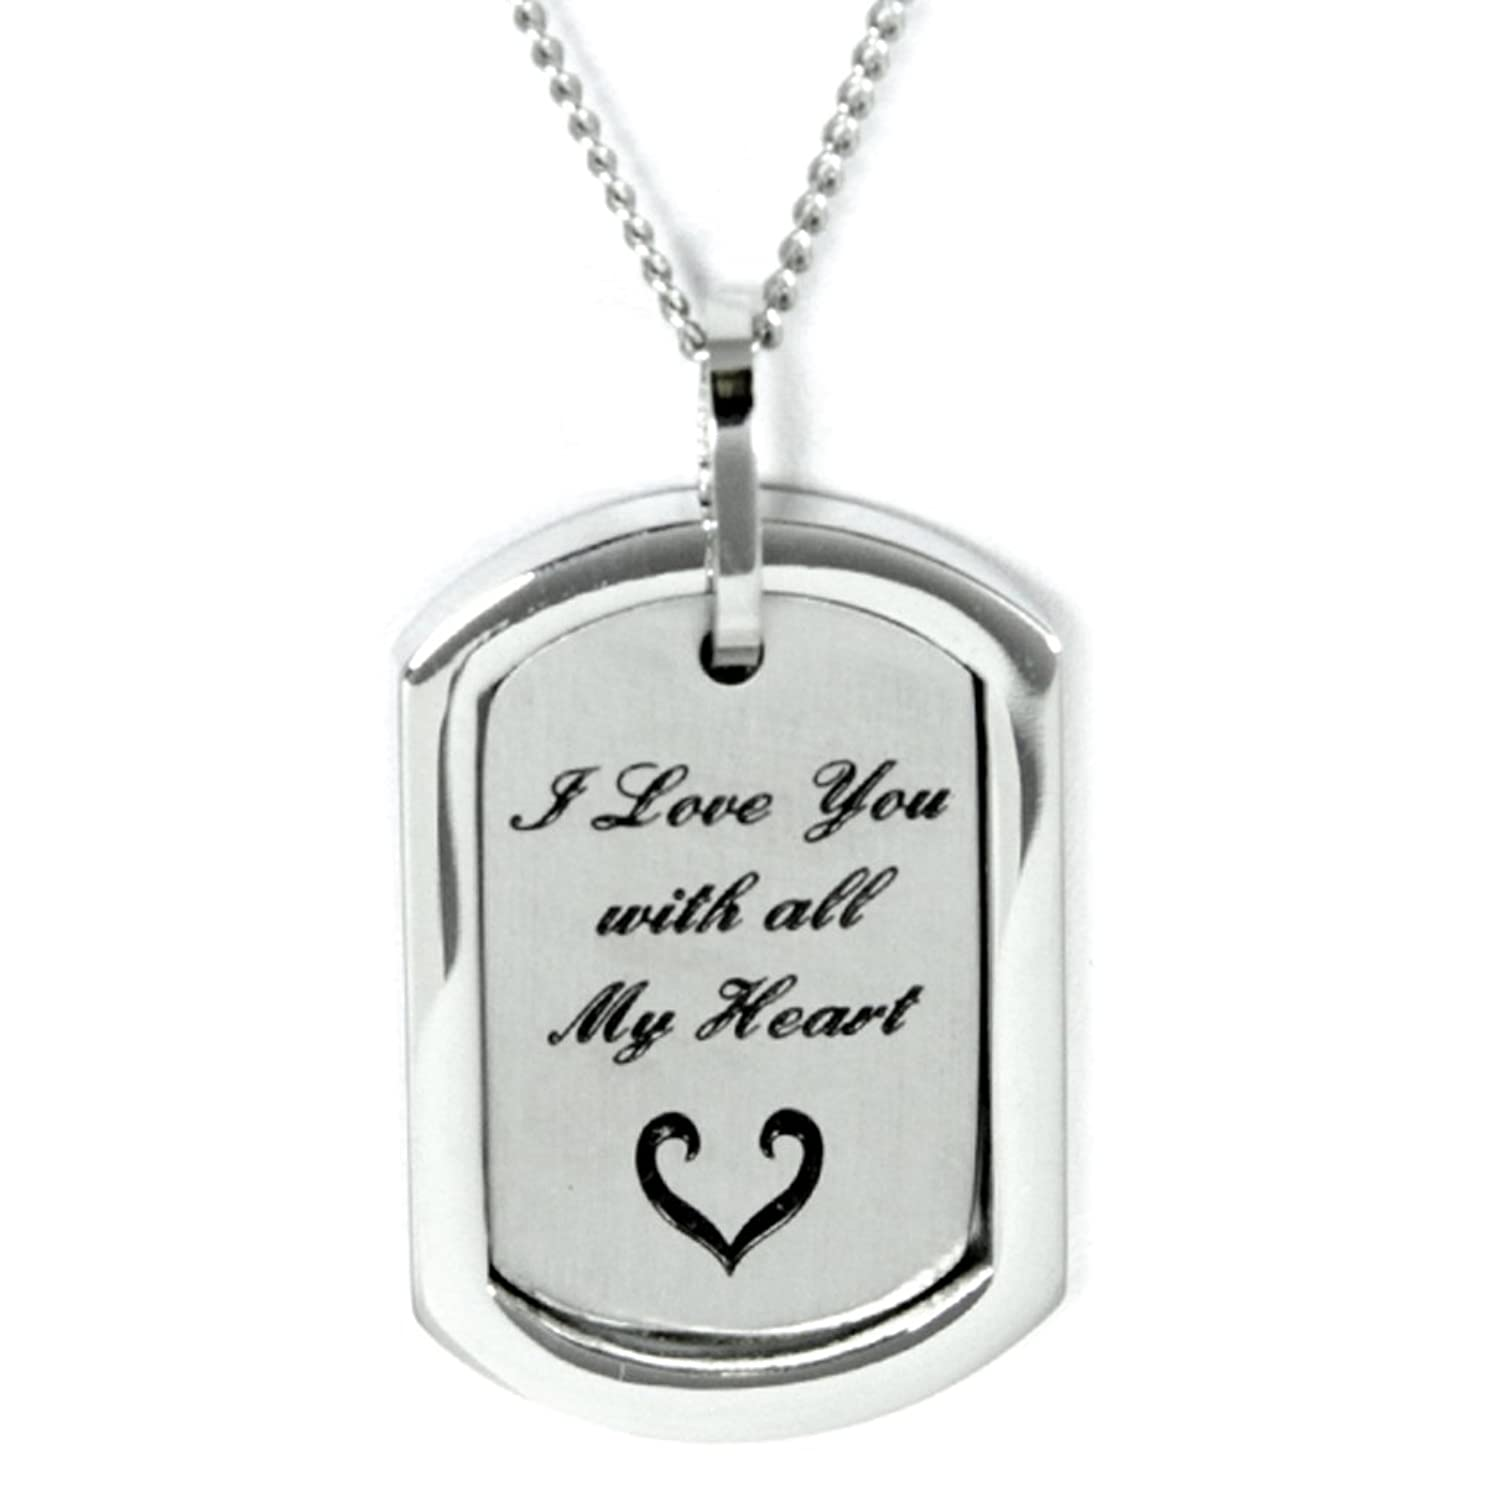 only love one silver girl couples wife husband pendant boy necklaces sweet his item jewelry in stainless from lovers friend her steel necklace gifts and